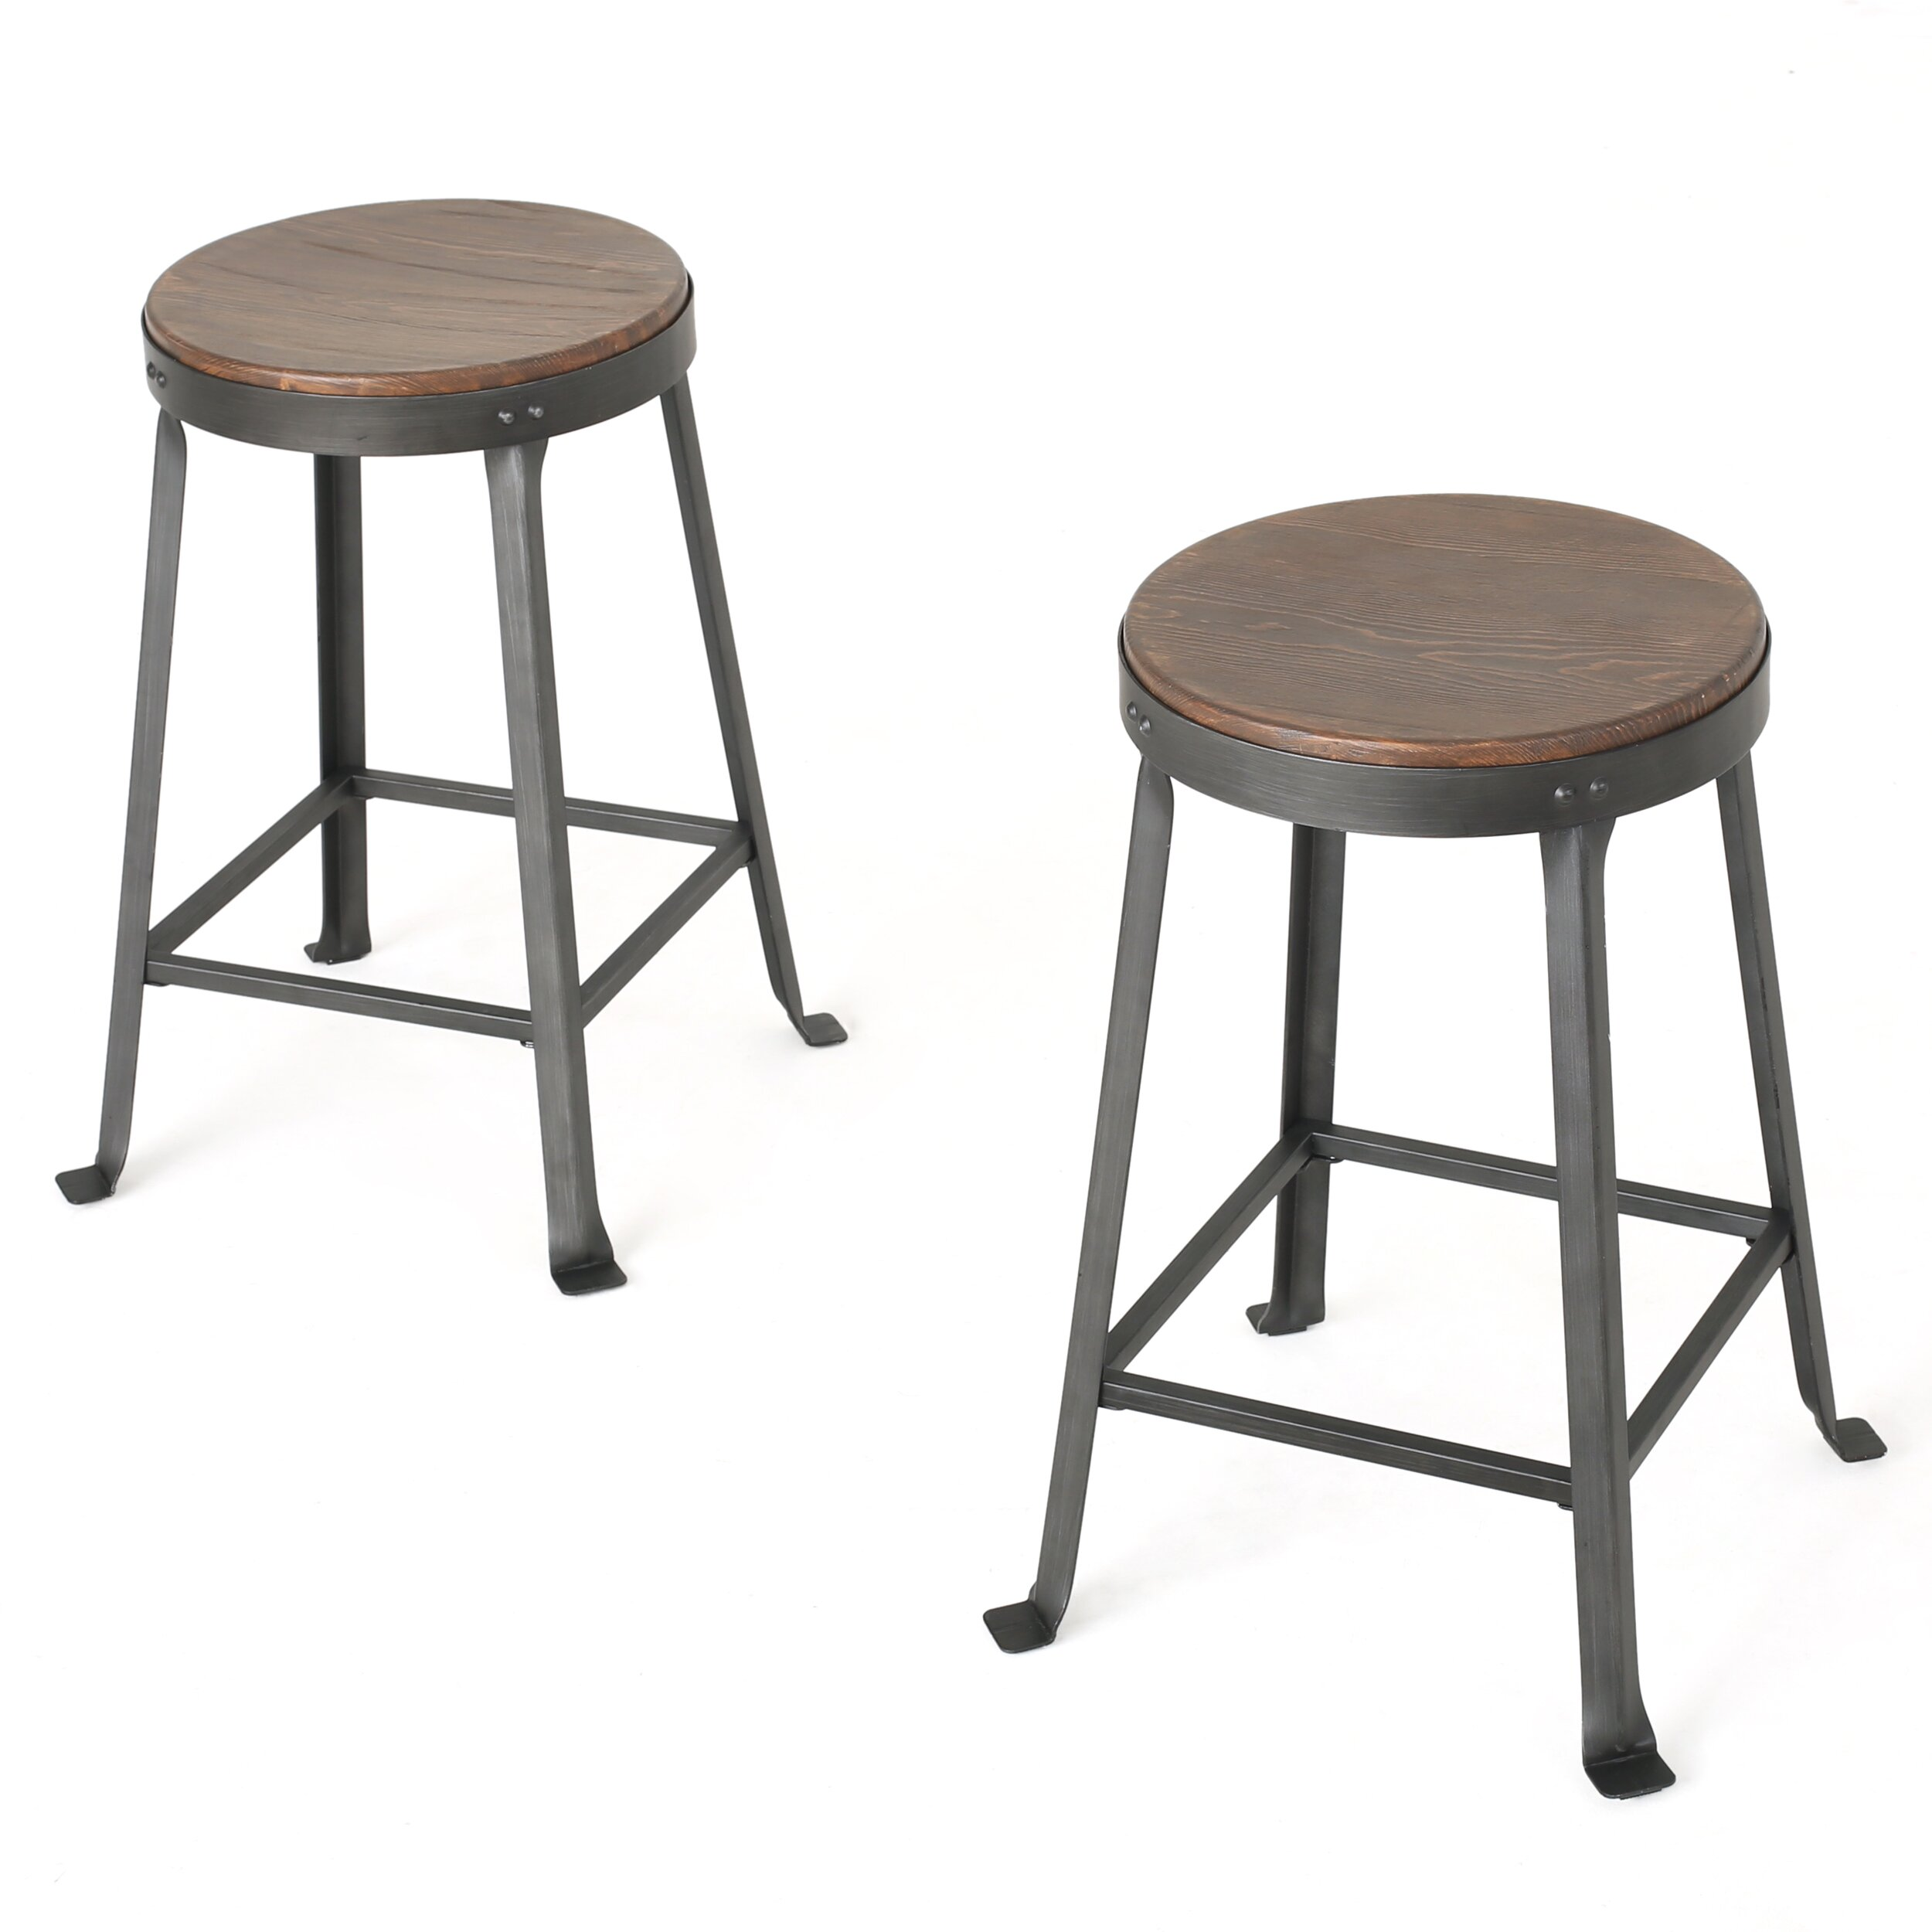 Laurel Foundry Modern Farmhouse Nathalie 24 Quot Bar Stool